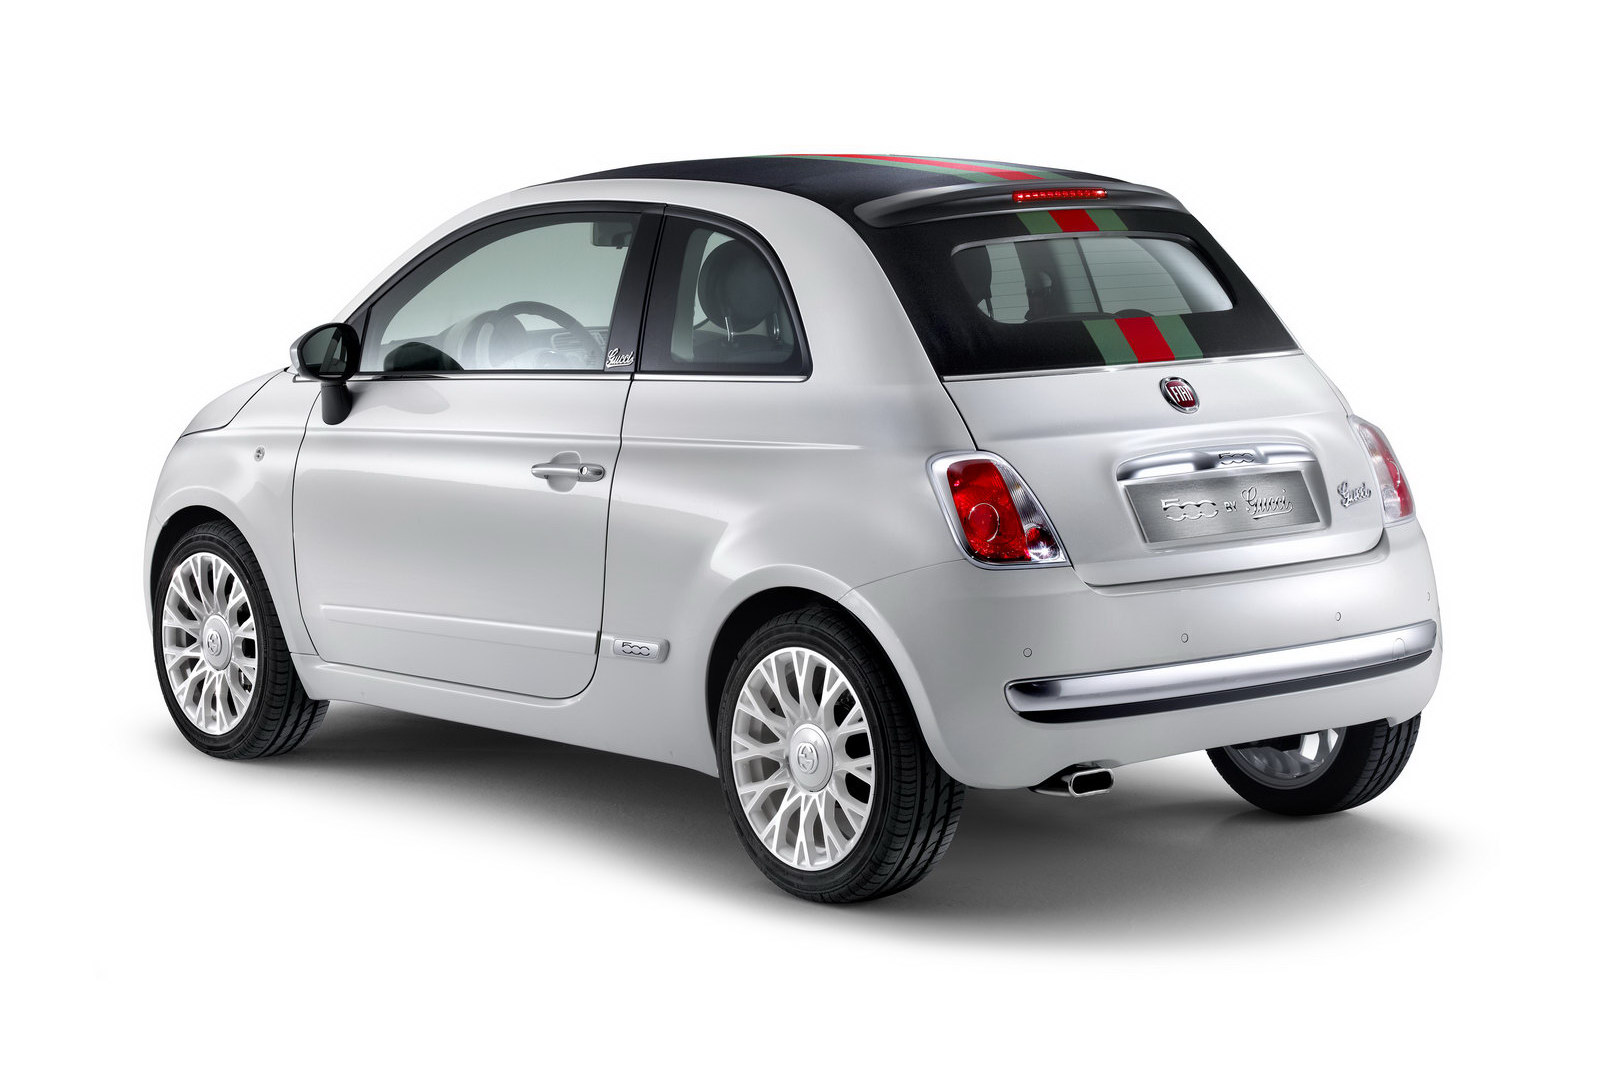 2012 Fiat 500 by Gucci 1 FIAT ANNOUNCES NEW 2012 TOPLESS EDITION FROM GUCCI